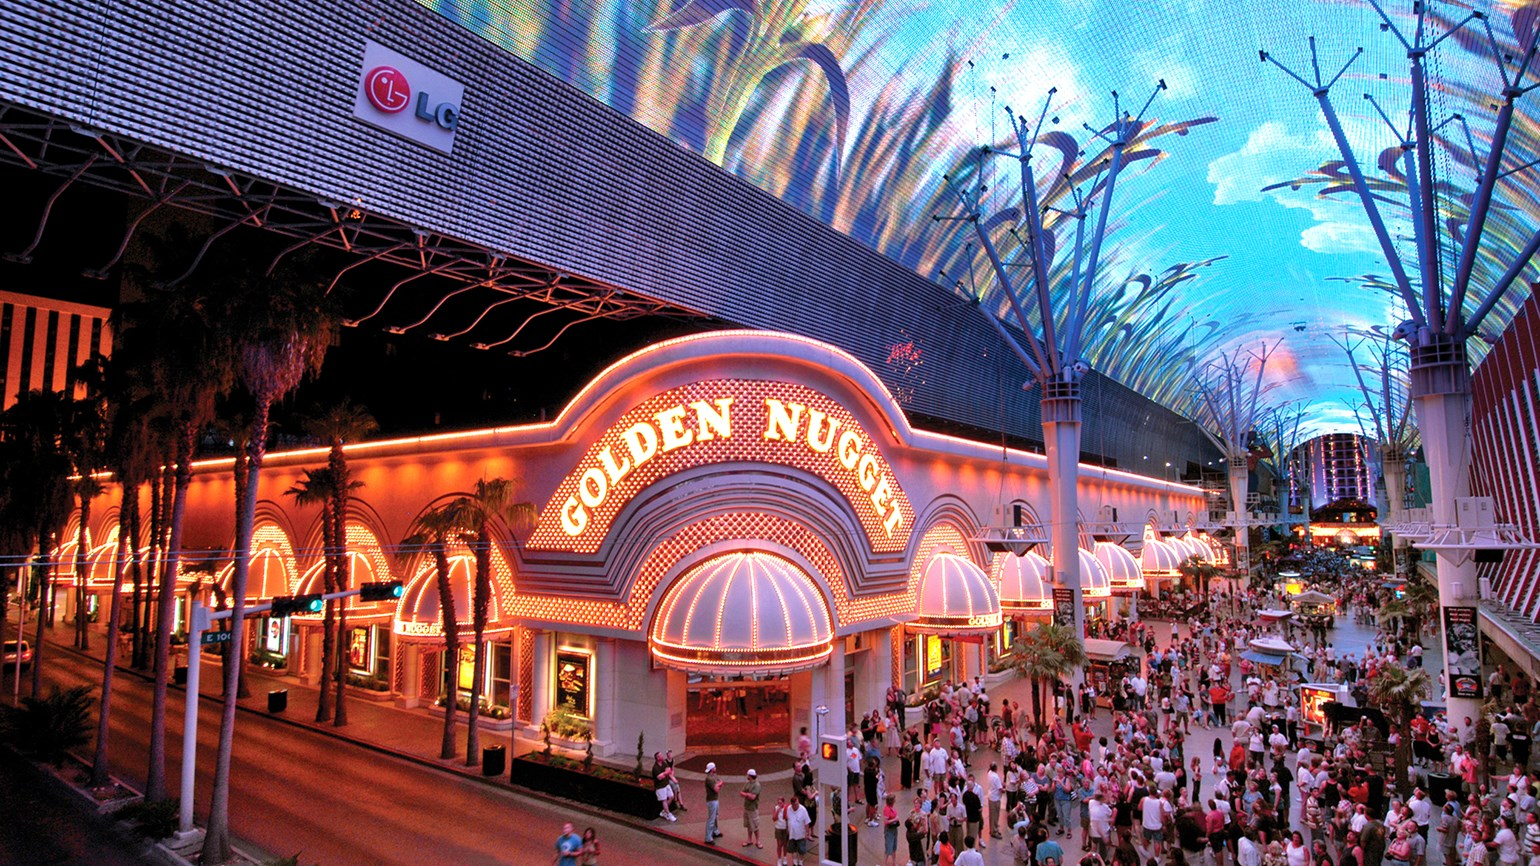 The Fremont Street Experience at night.